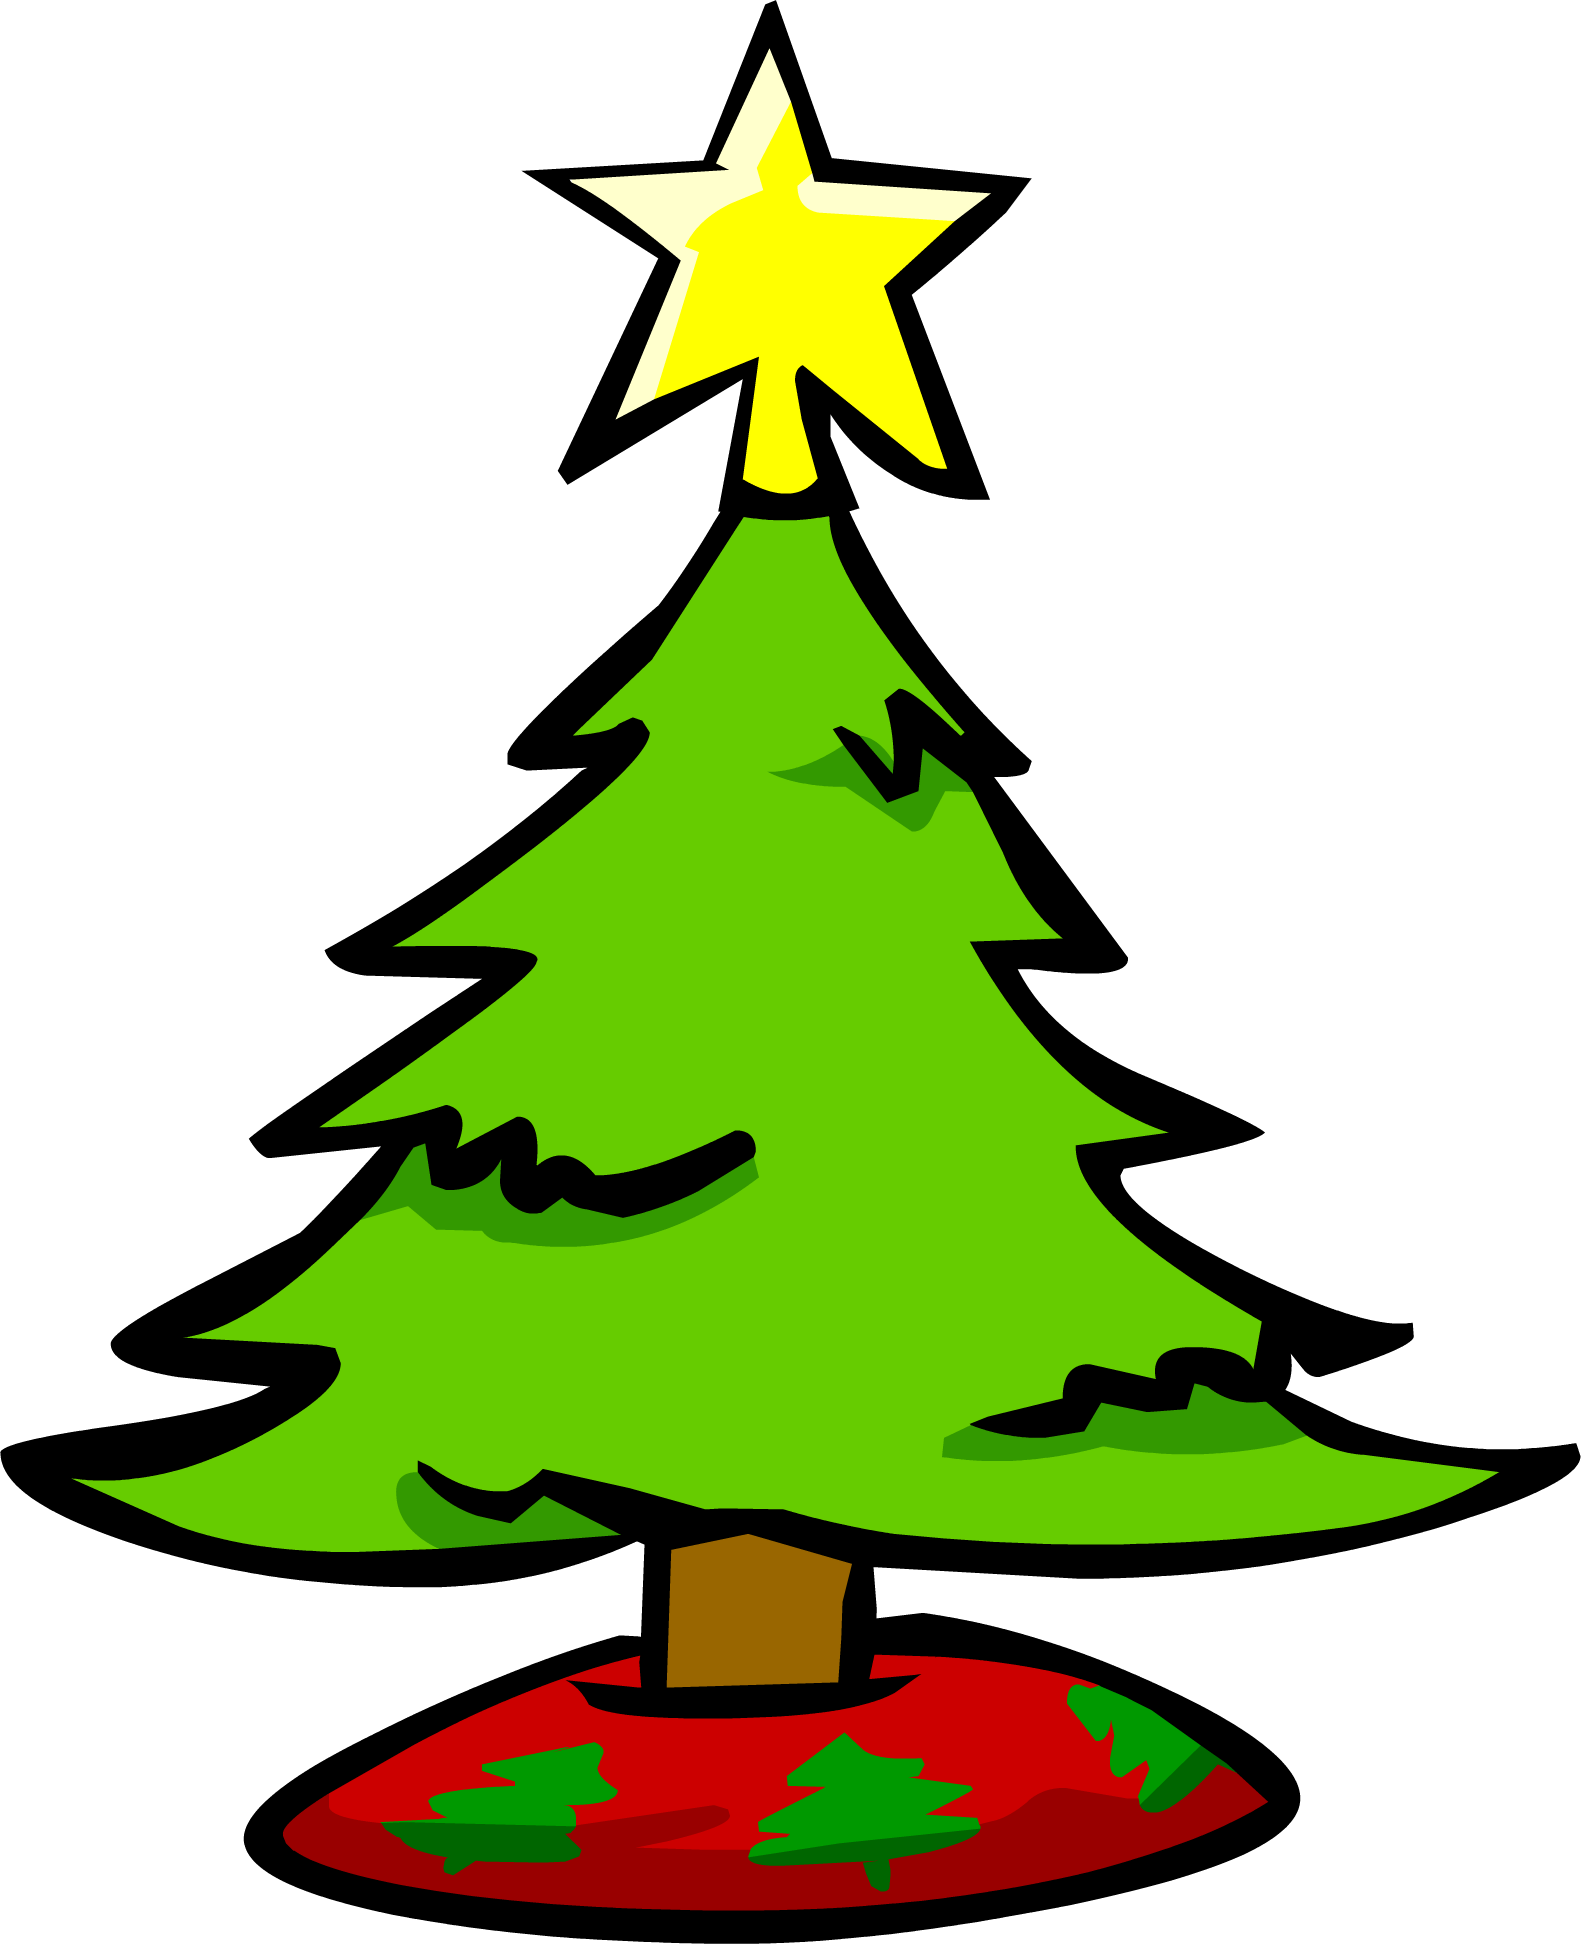 small christmas tree club penguin wiki fandom powered by wikia - Small Christmas Tree